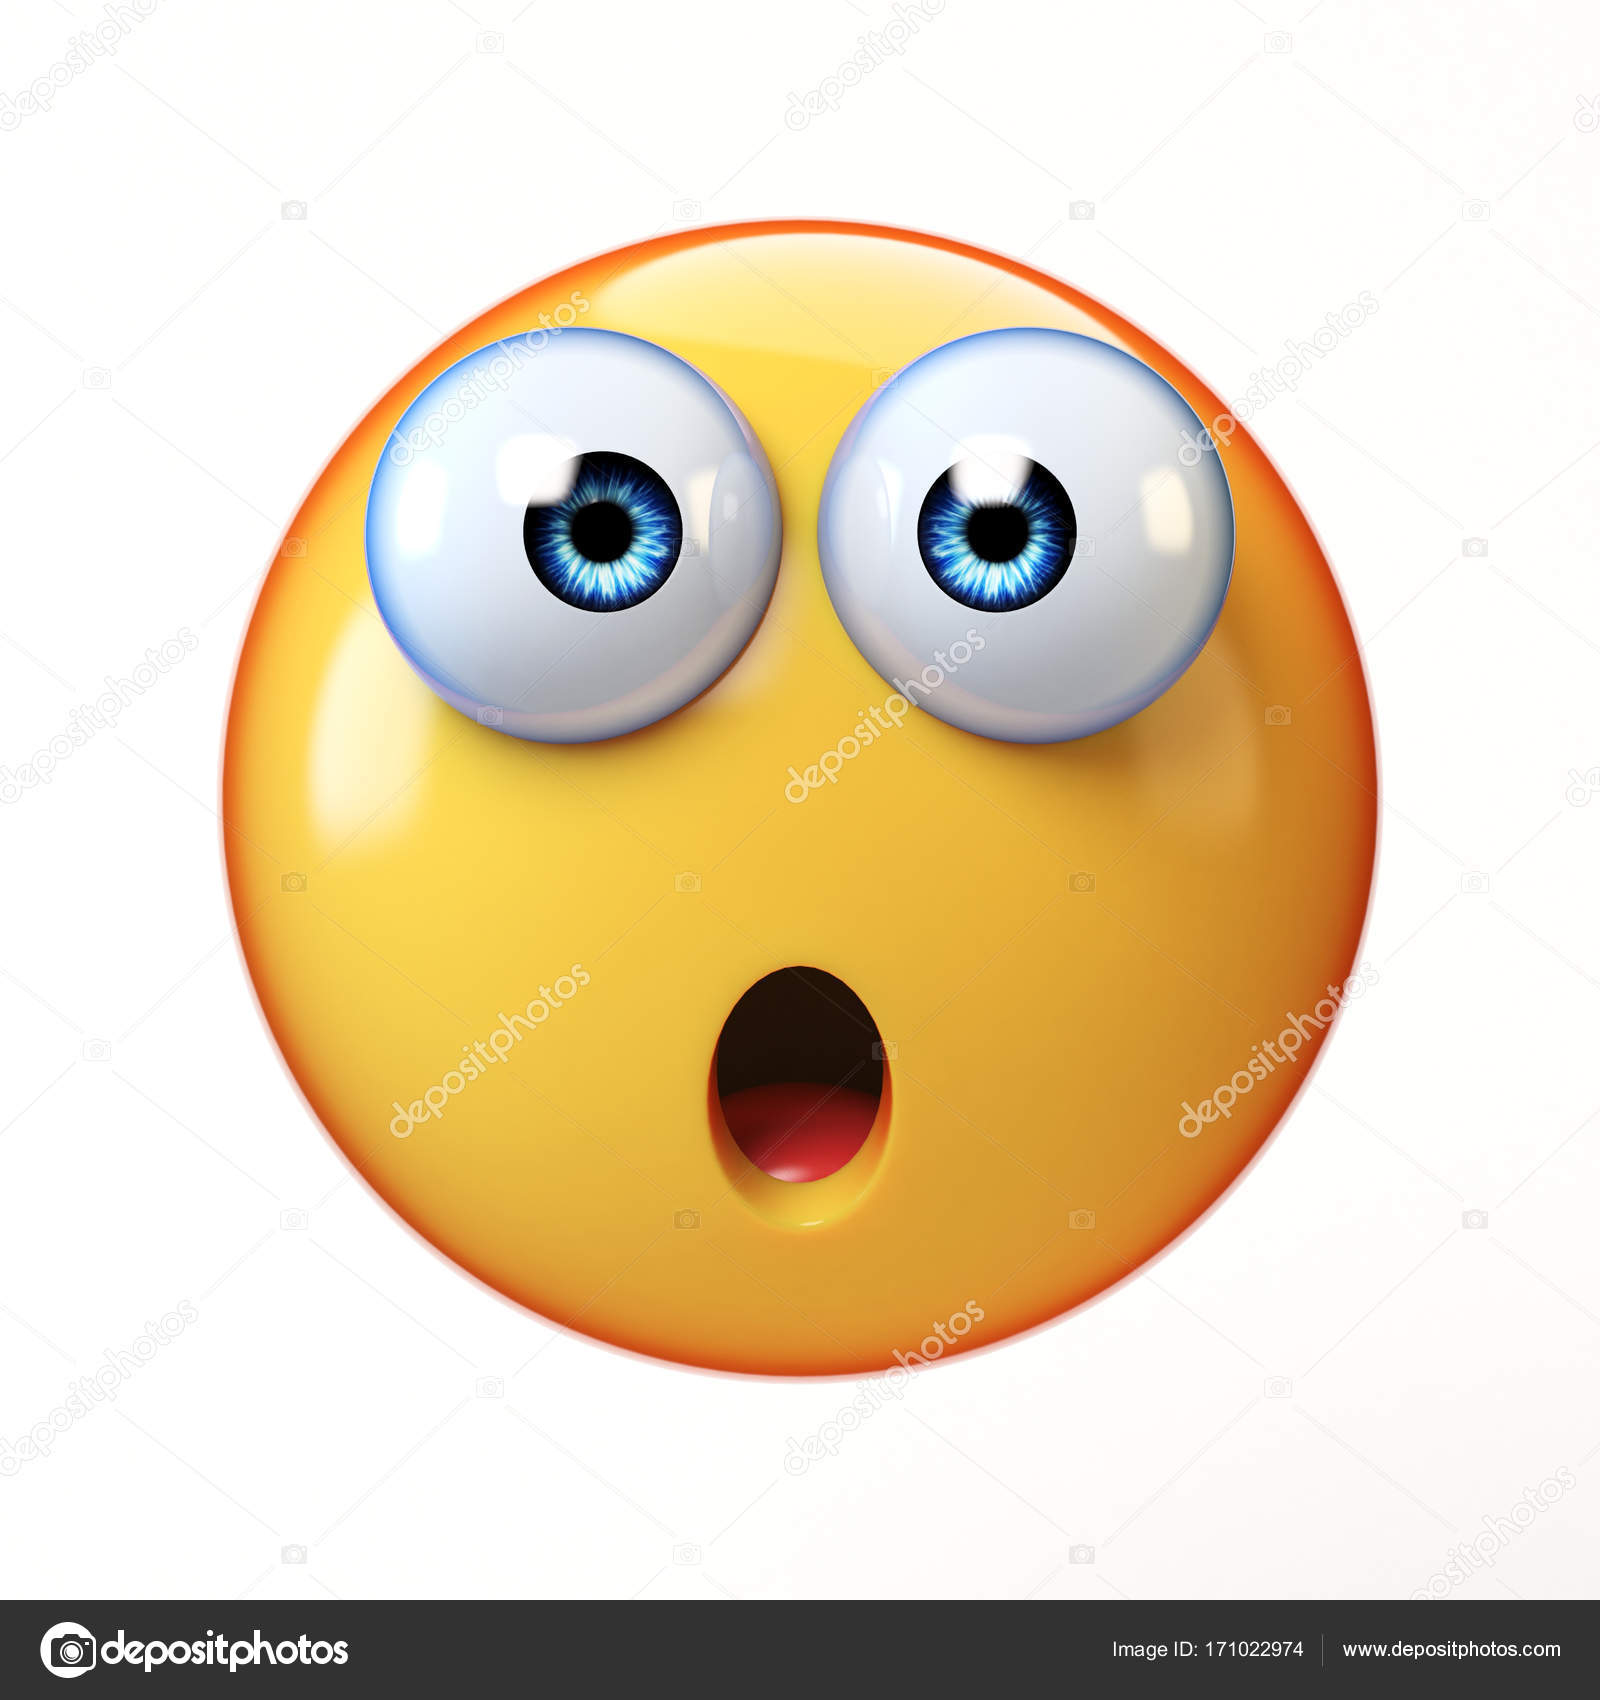 Wall To Wall Stickers Shocked Emoji Www Pixshark Com Images Galleries With A